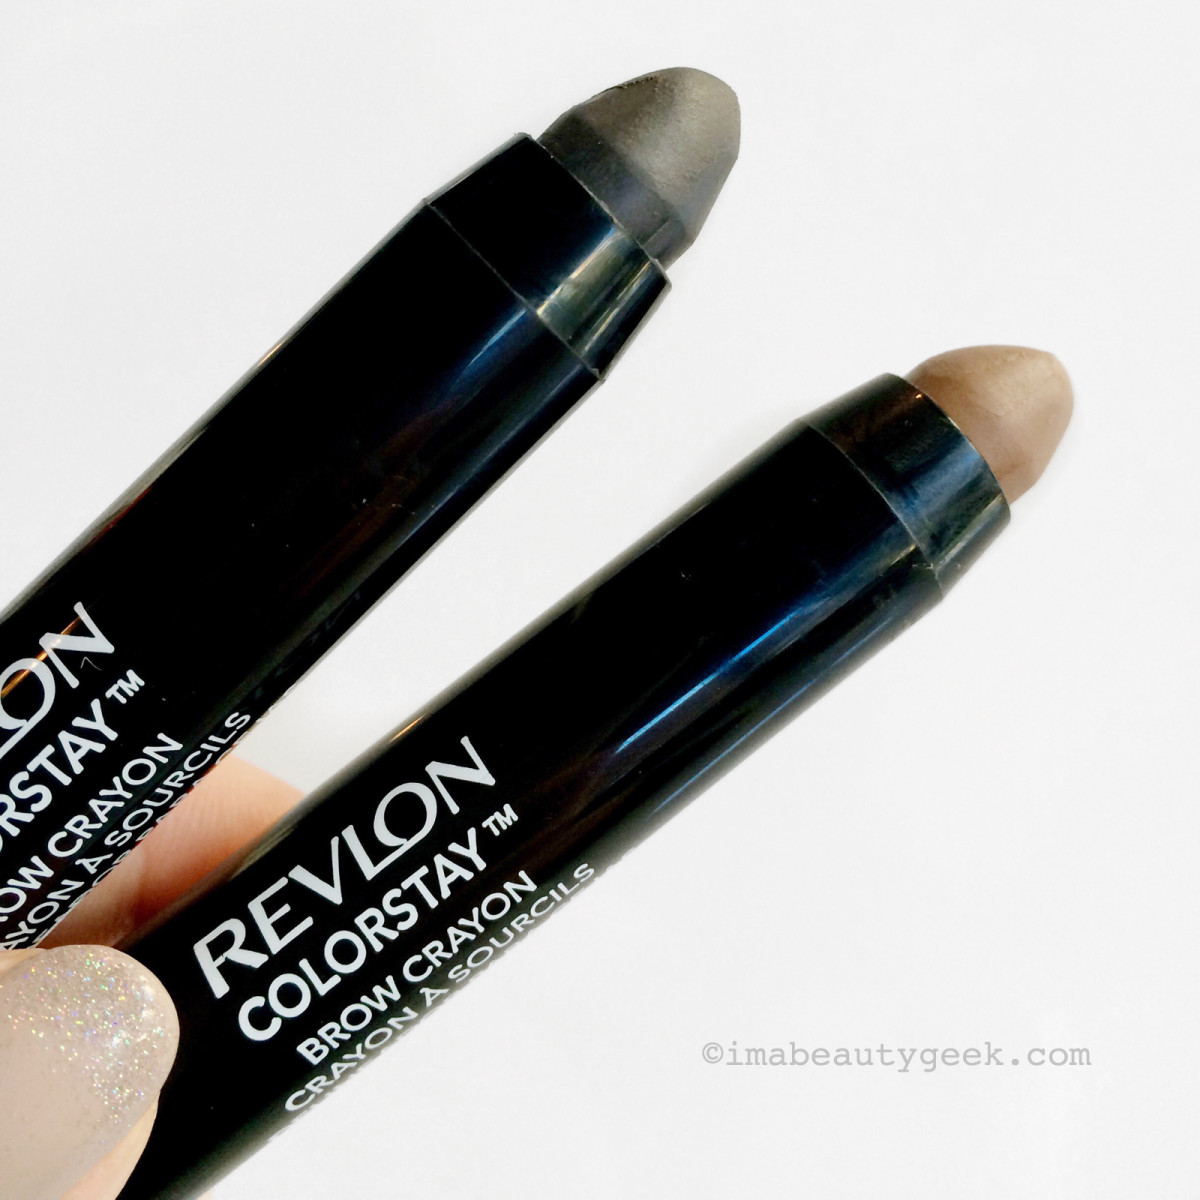 Revlon ColorStay Brow Crayon in Granite and Blonde